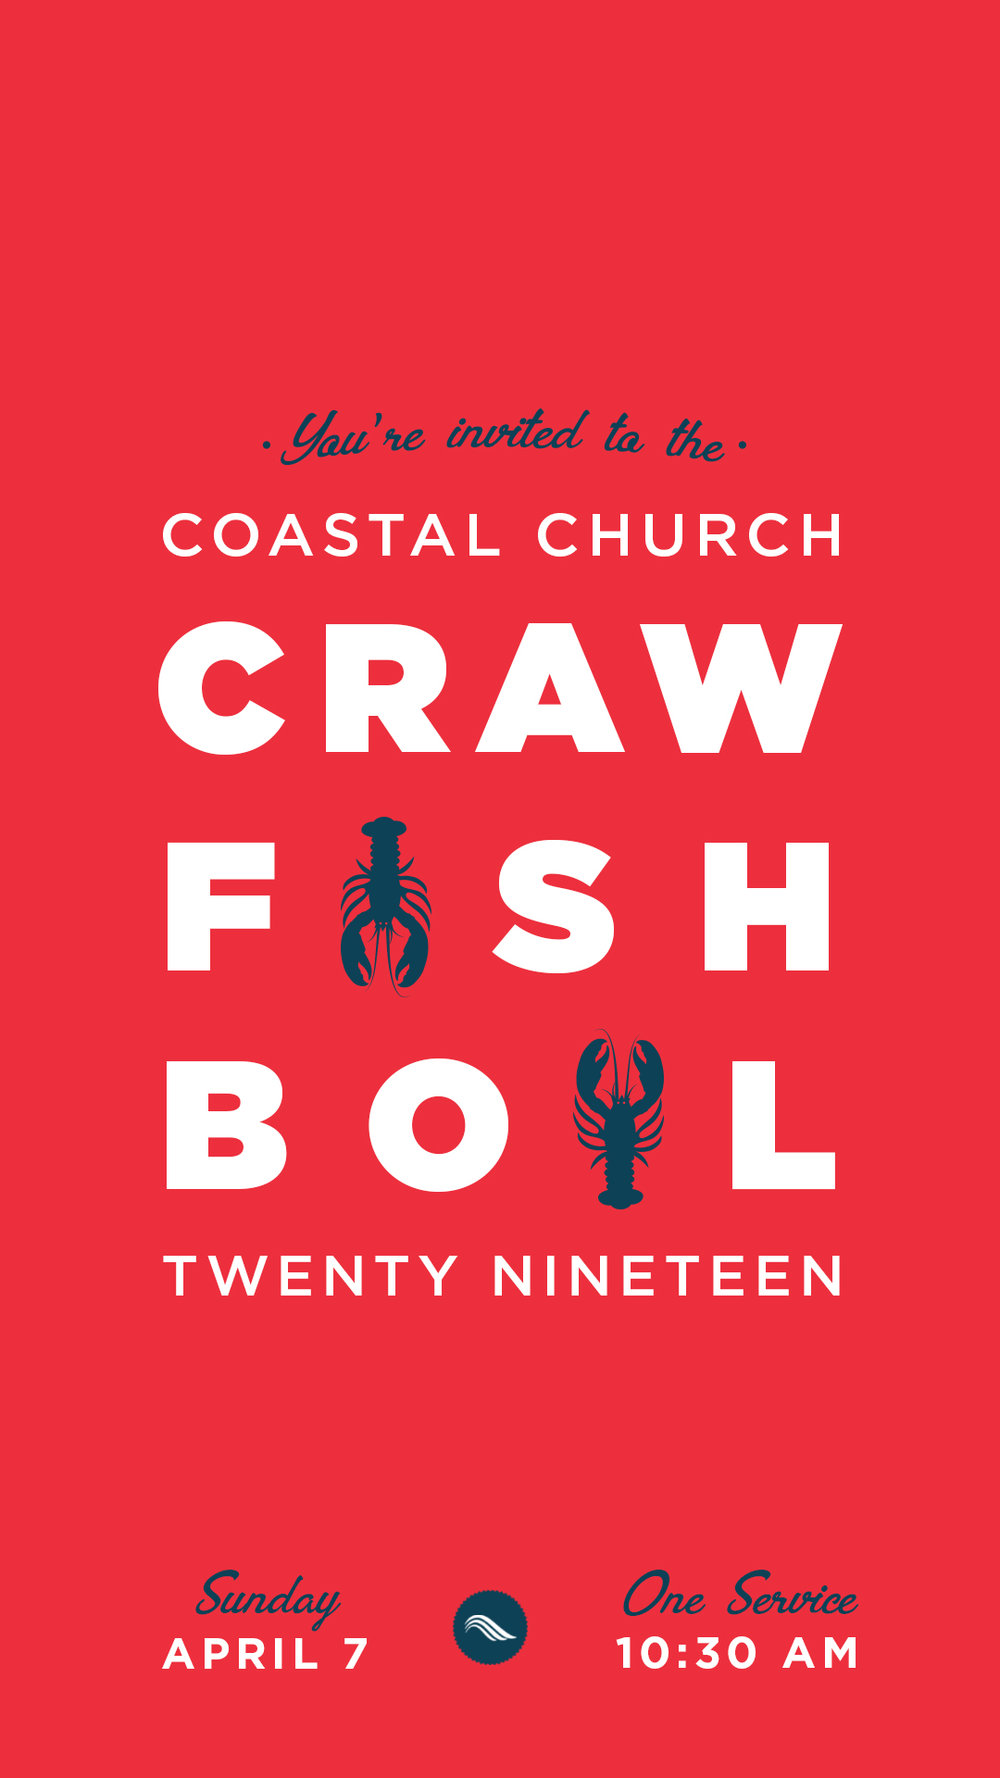 Crawfish Boil_IG_02.jpg